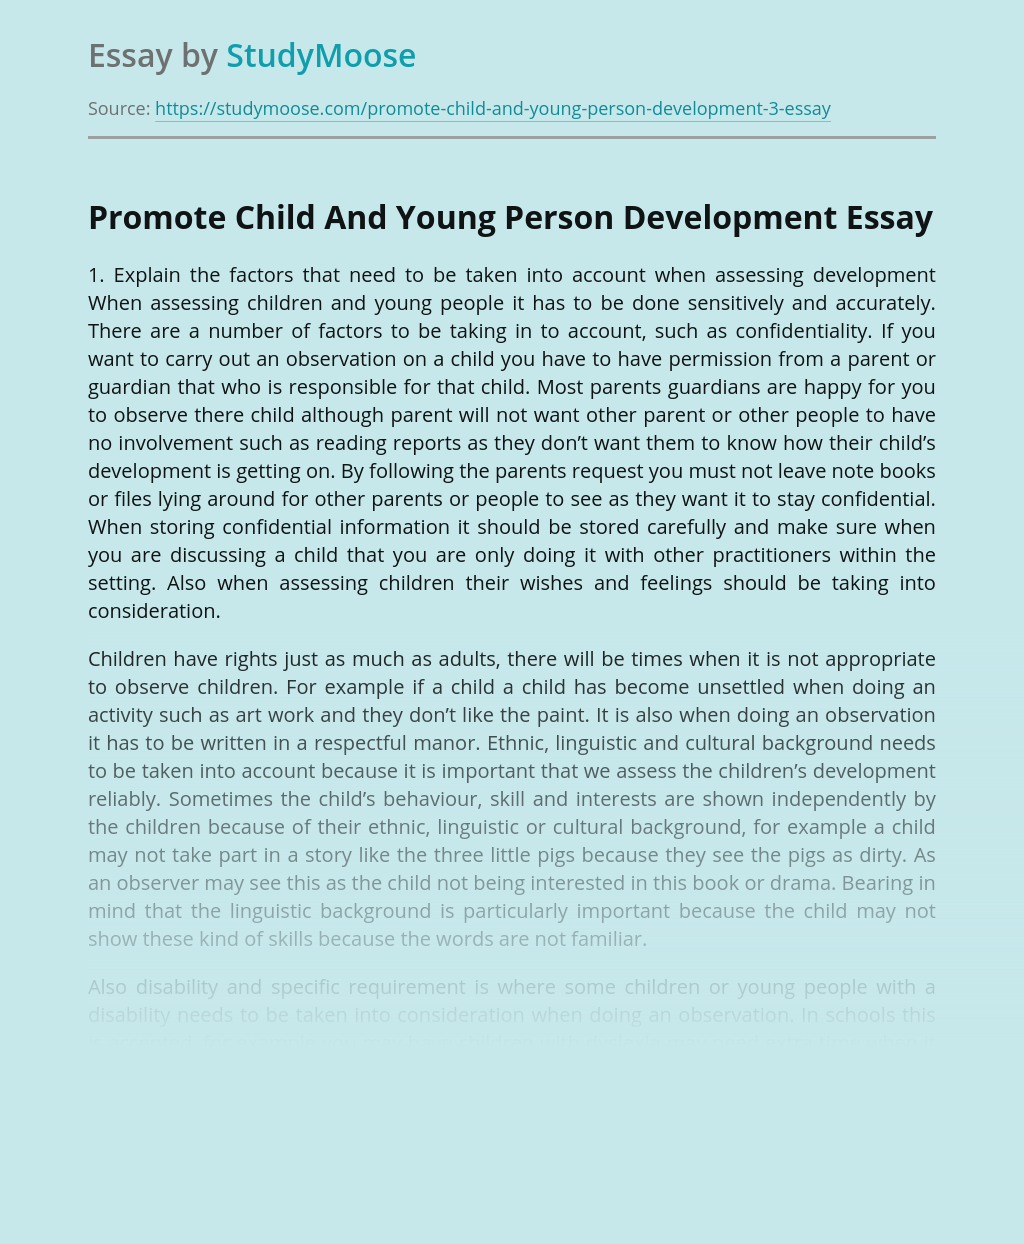 Promote Child And Young Person Development